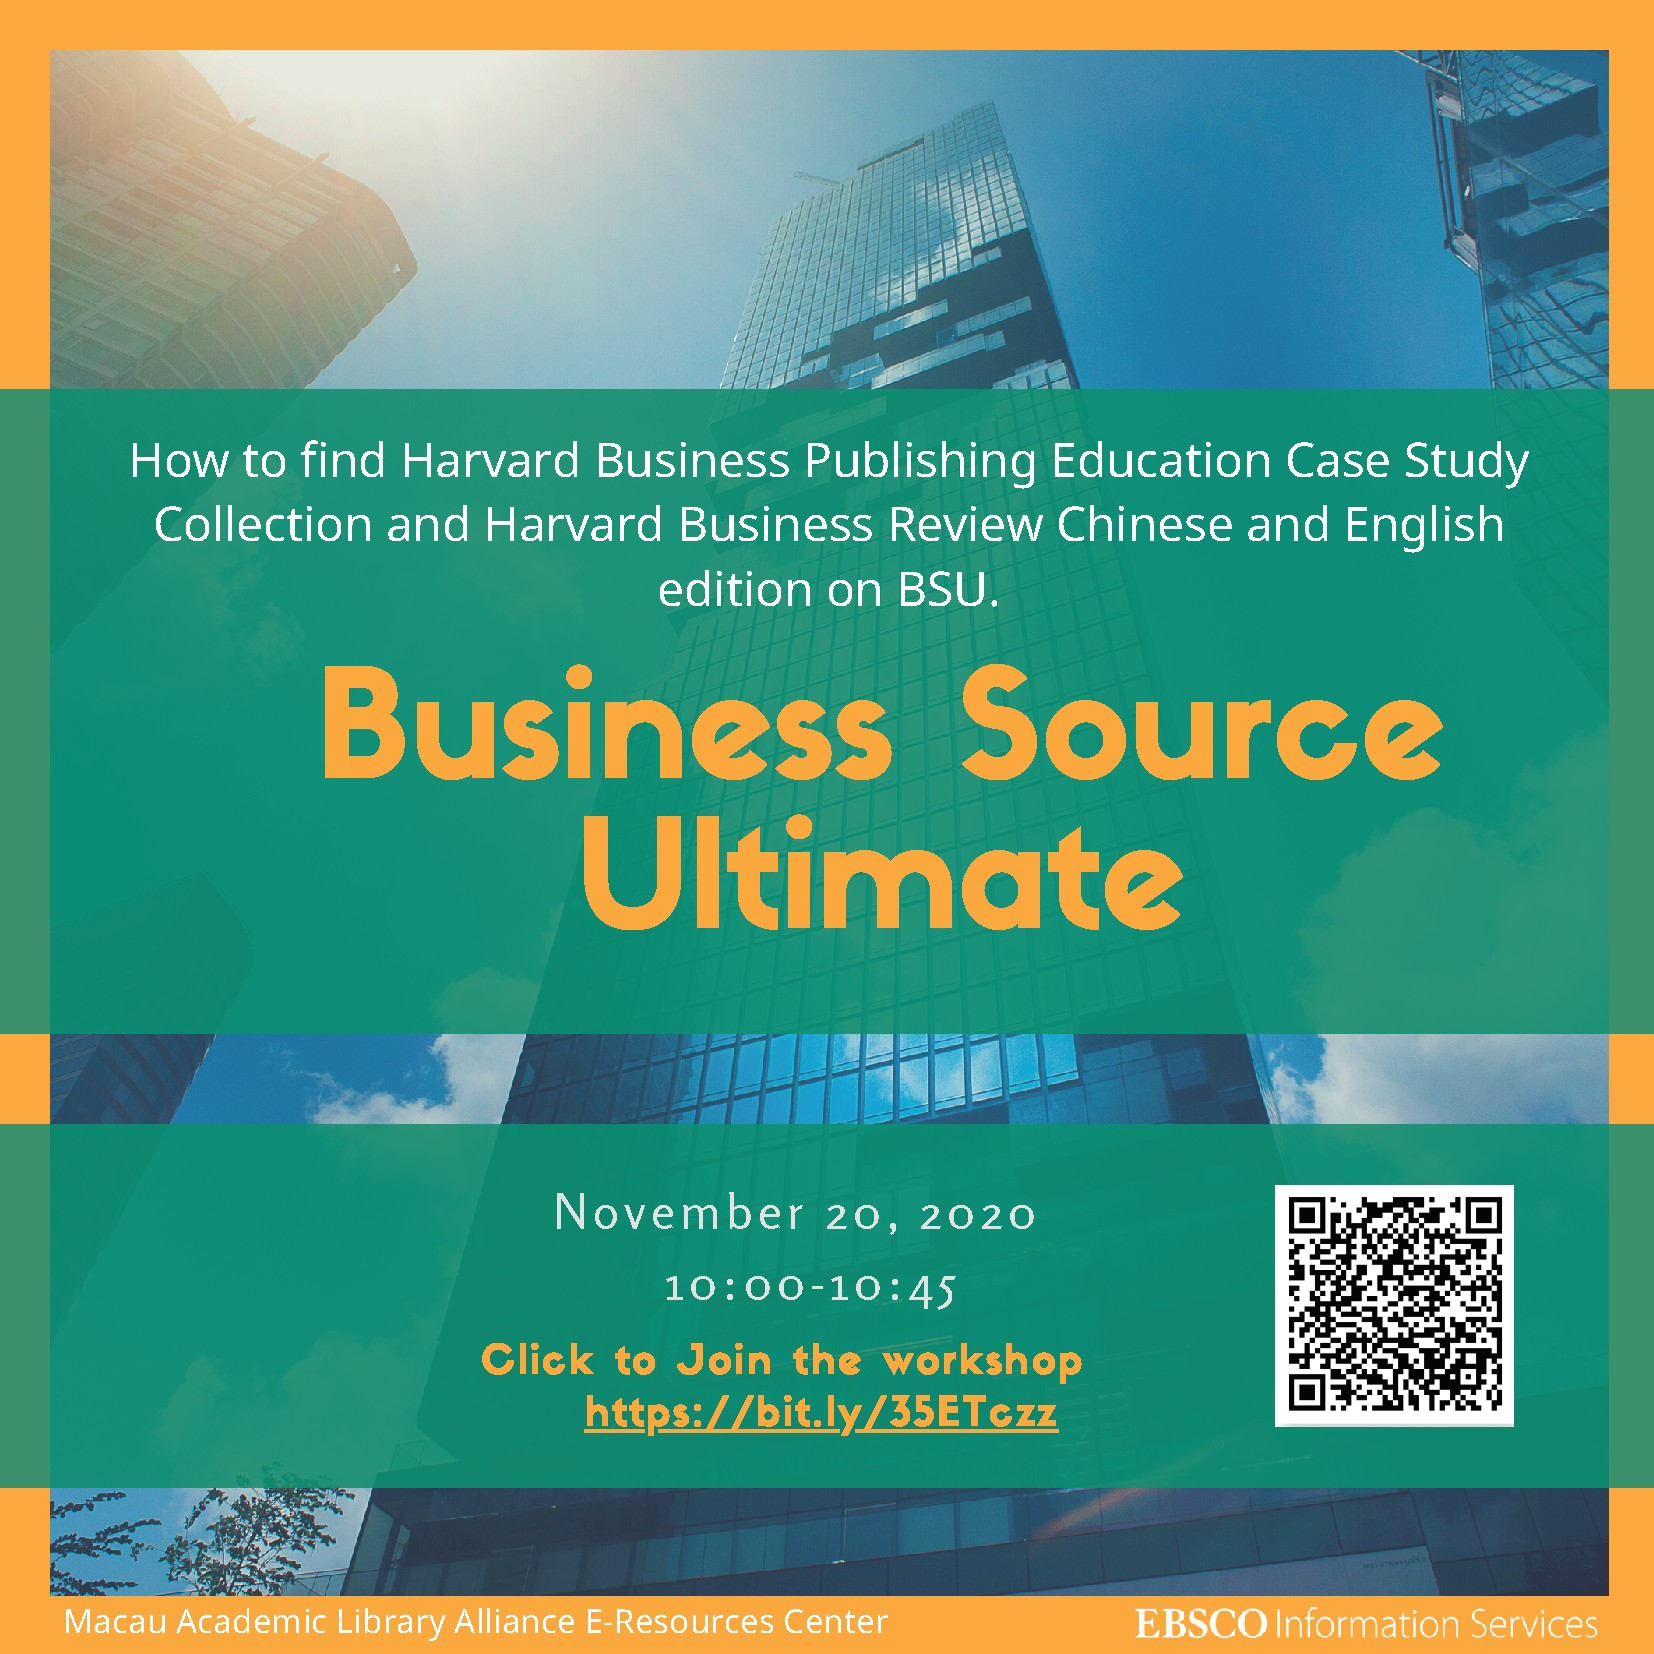 EBSCO Databases Online Training Sessions - Business Source Ultimate (English Session)